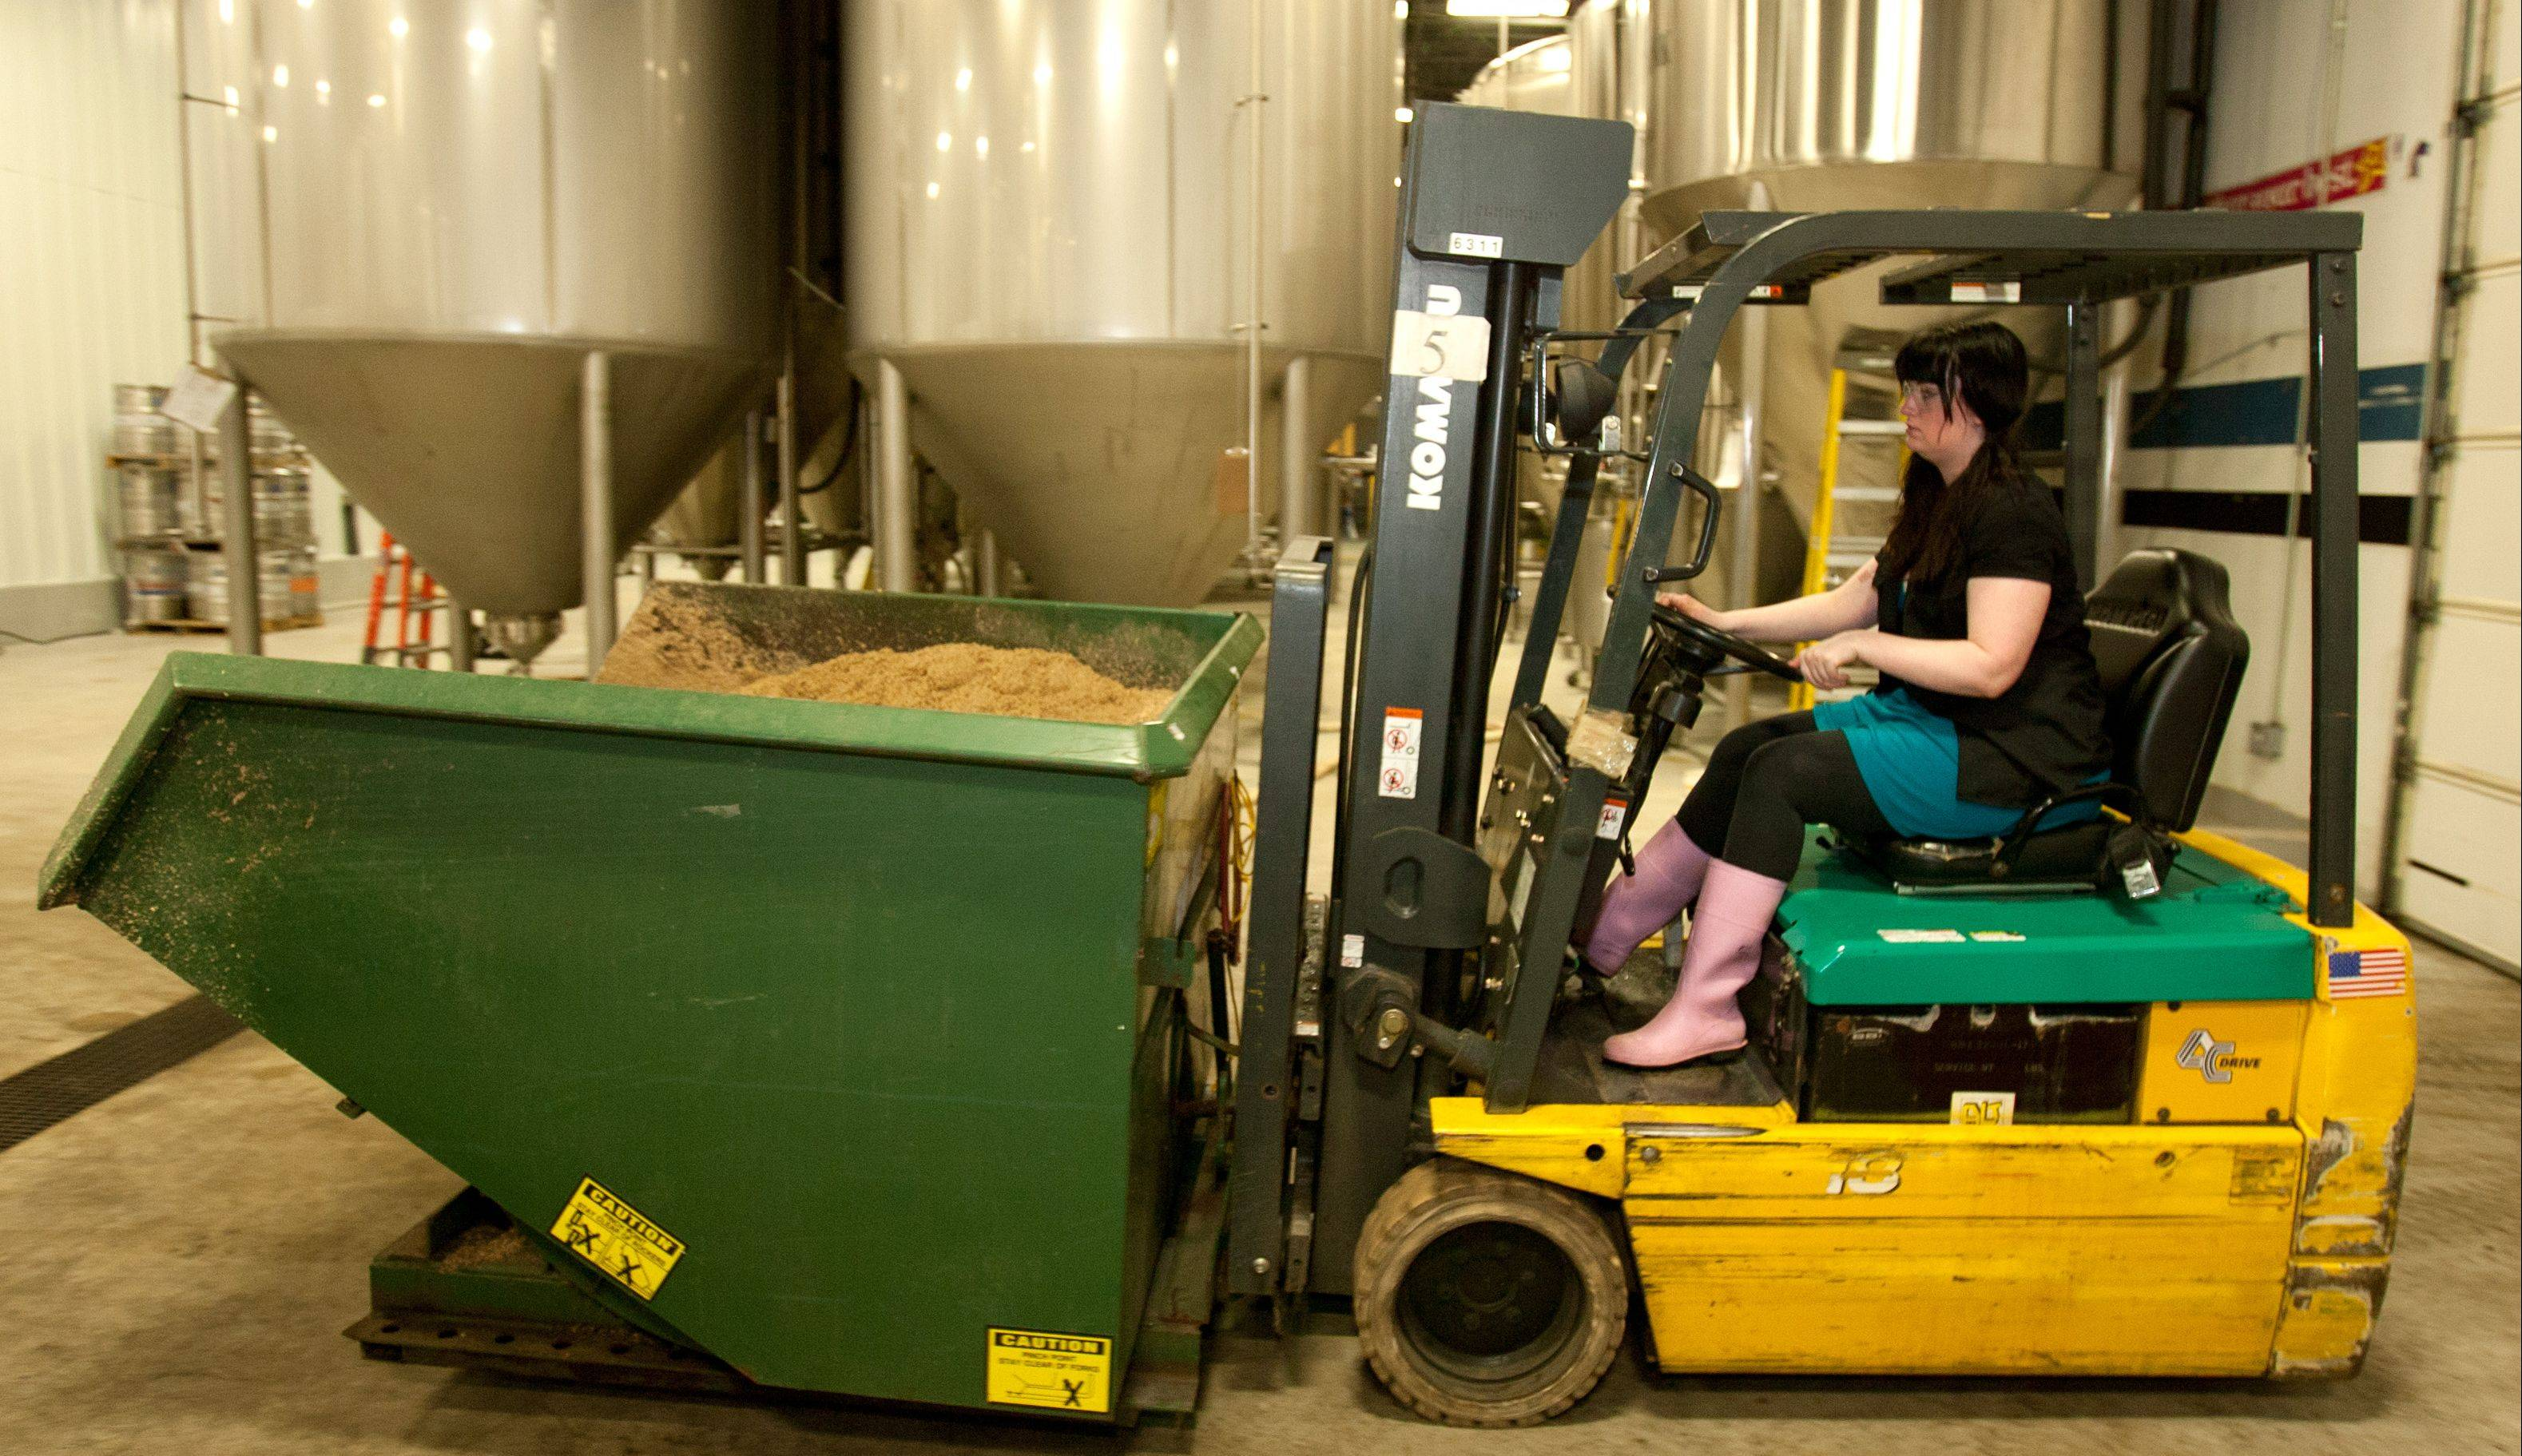 Ashleigh Arnold, brew master at the Two Brothers Brewery in Warrenville, moves spent grain within the factory.